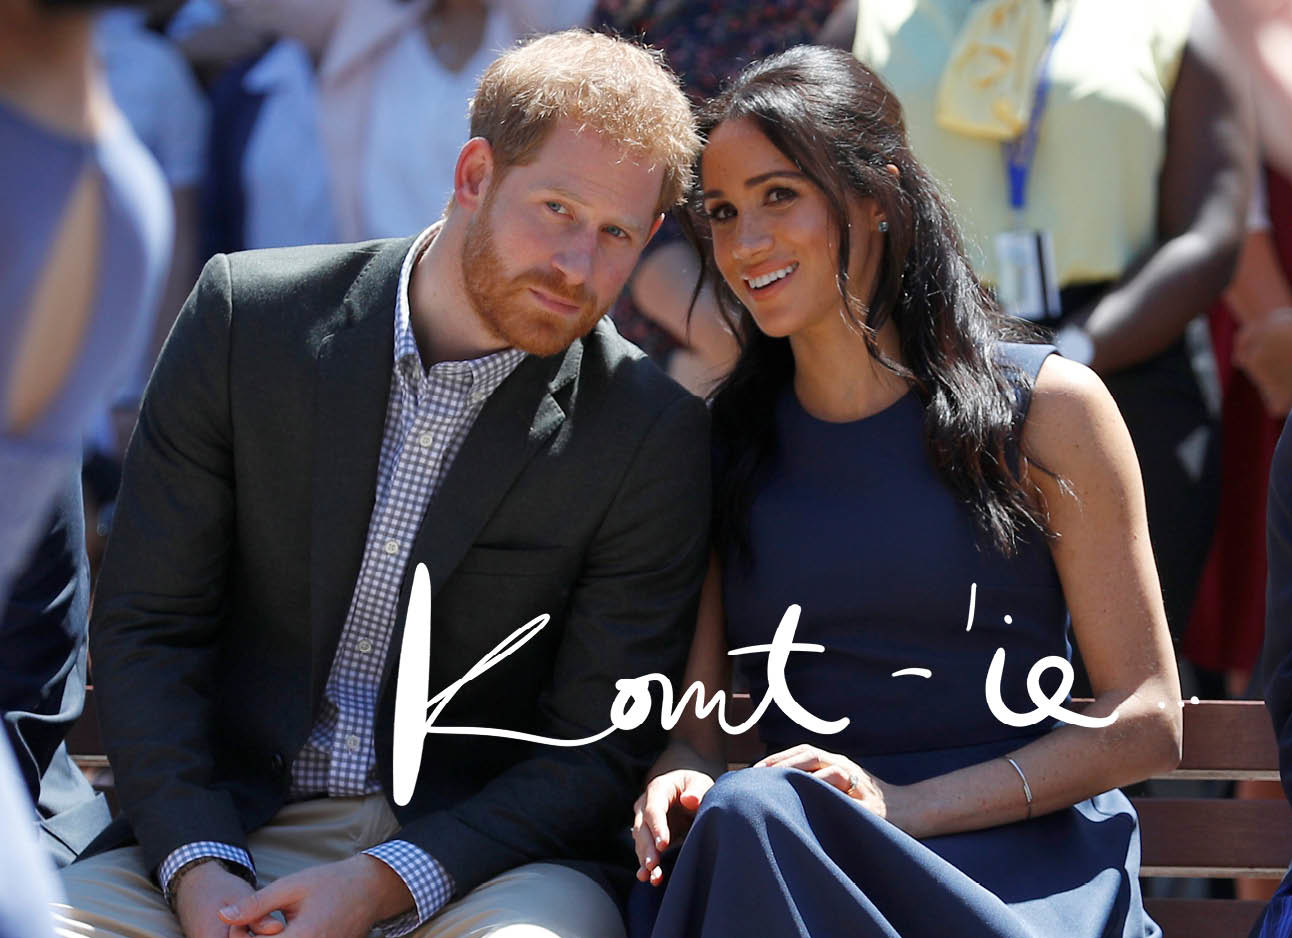 meghan markle in blauwe jurk praat met prins harry